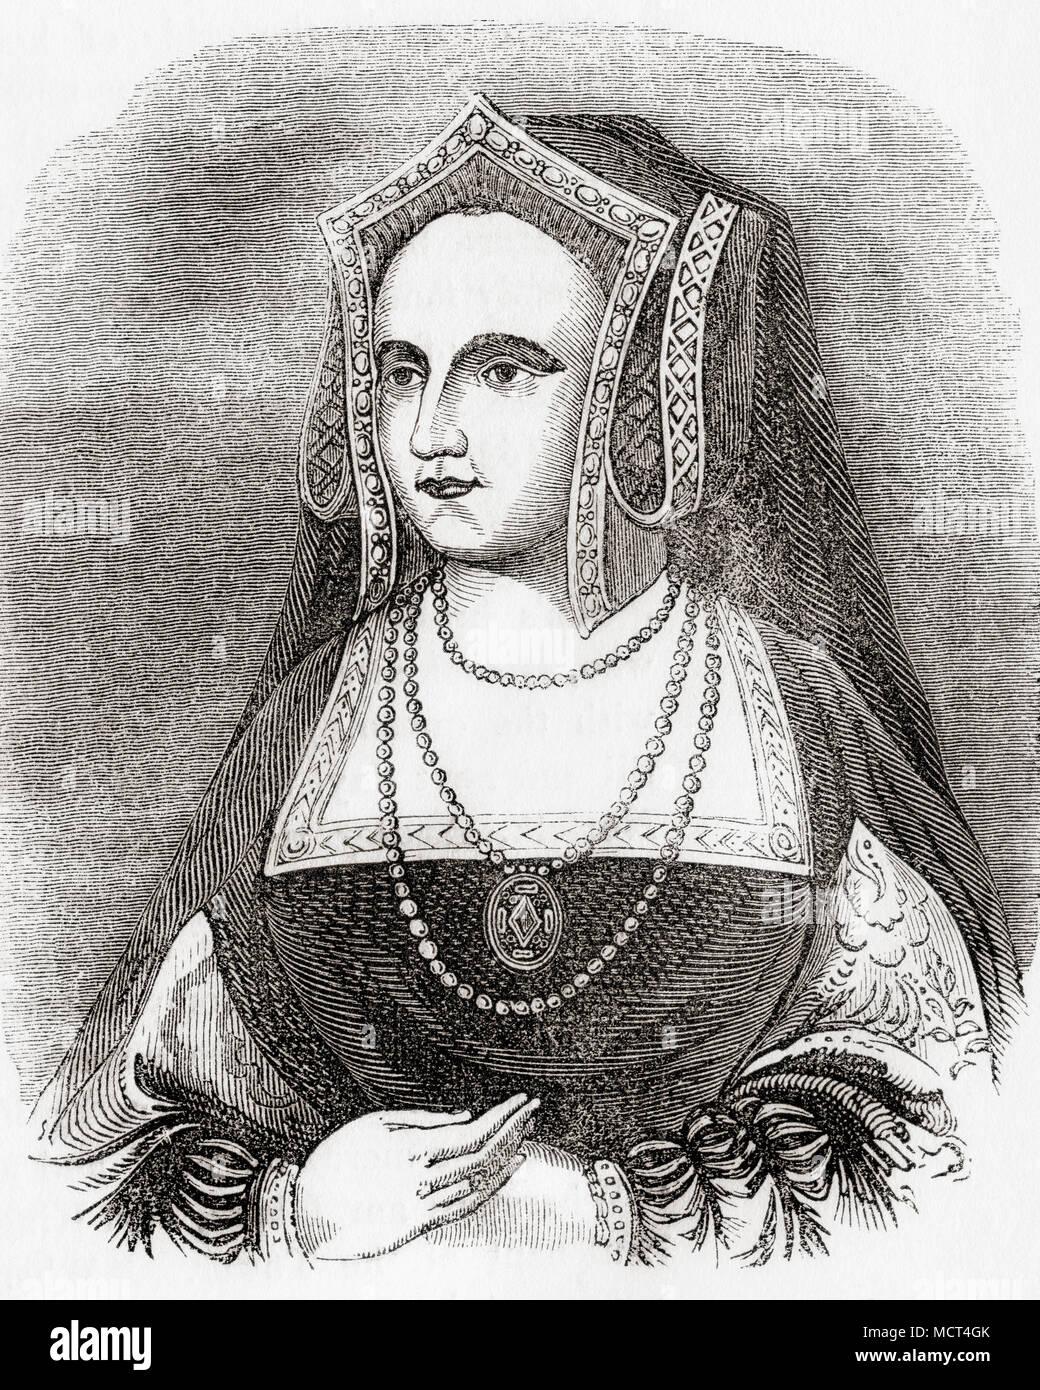 Catherine Parr, also spelled Katherine, Katheryn or Katharine, 1512 - 1548.  Queen of England and of Ireland (1543–47) as the last of the six wives of King Henry VIII.  From Old England: A Pictorial Museum, published 1847. - Stock Image